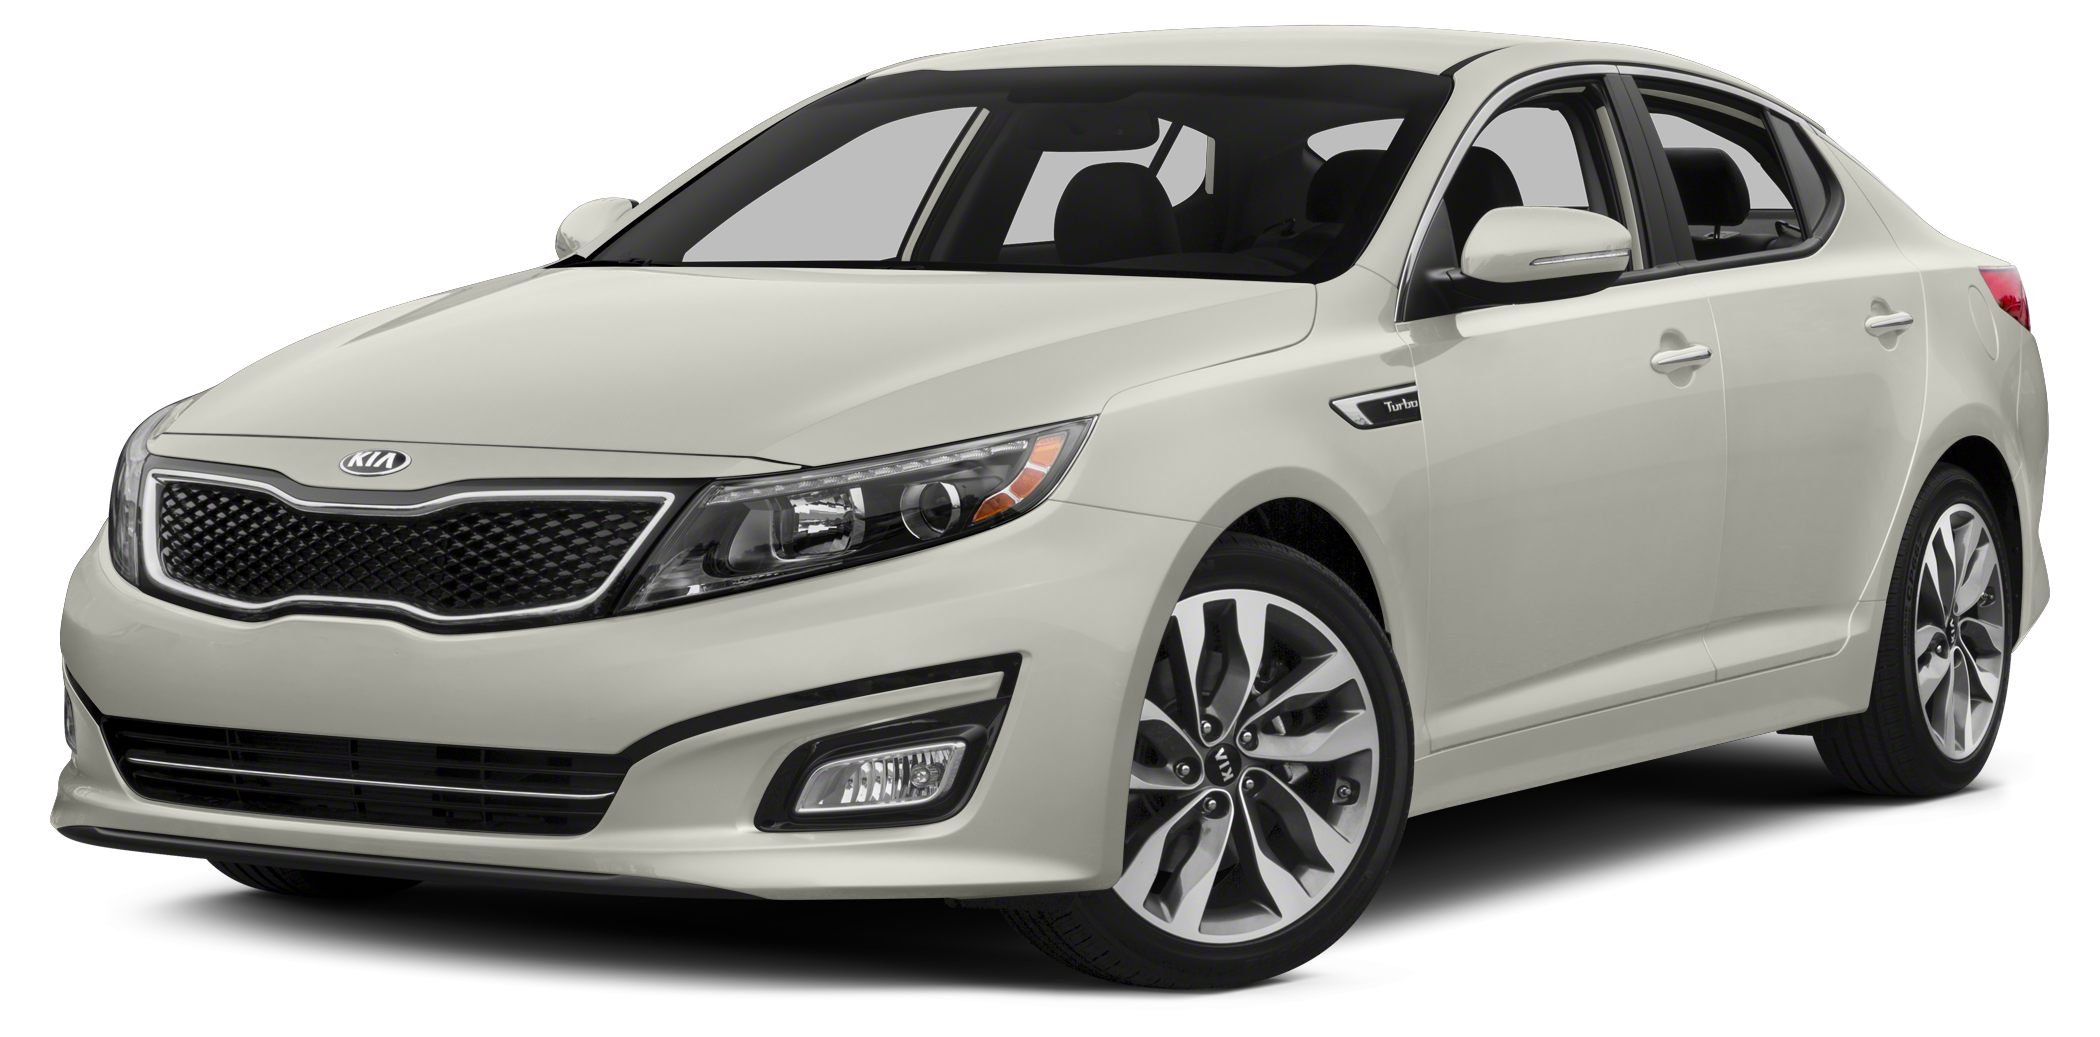 2015 Kia Optima SX Miles 31130Color Snow White Pearl Stock K17553A VIN 5XXGR4A68FG460108